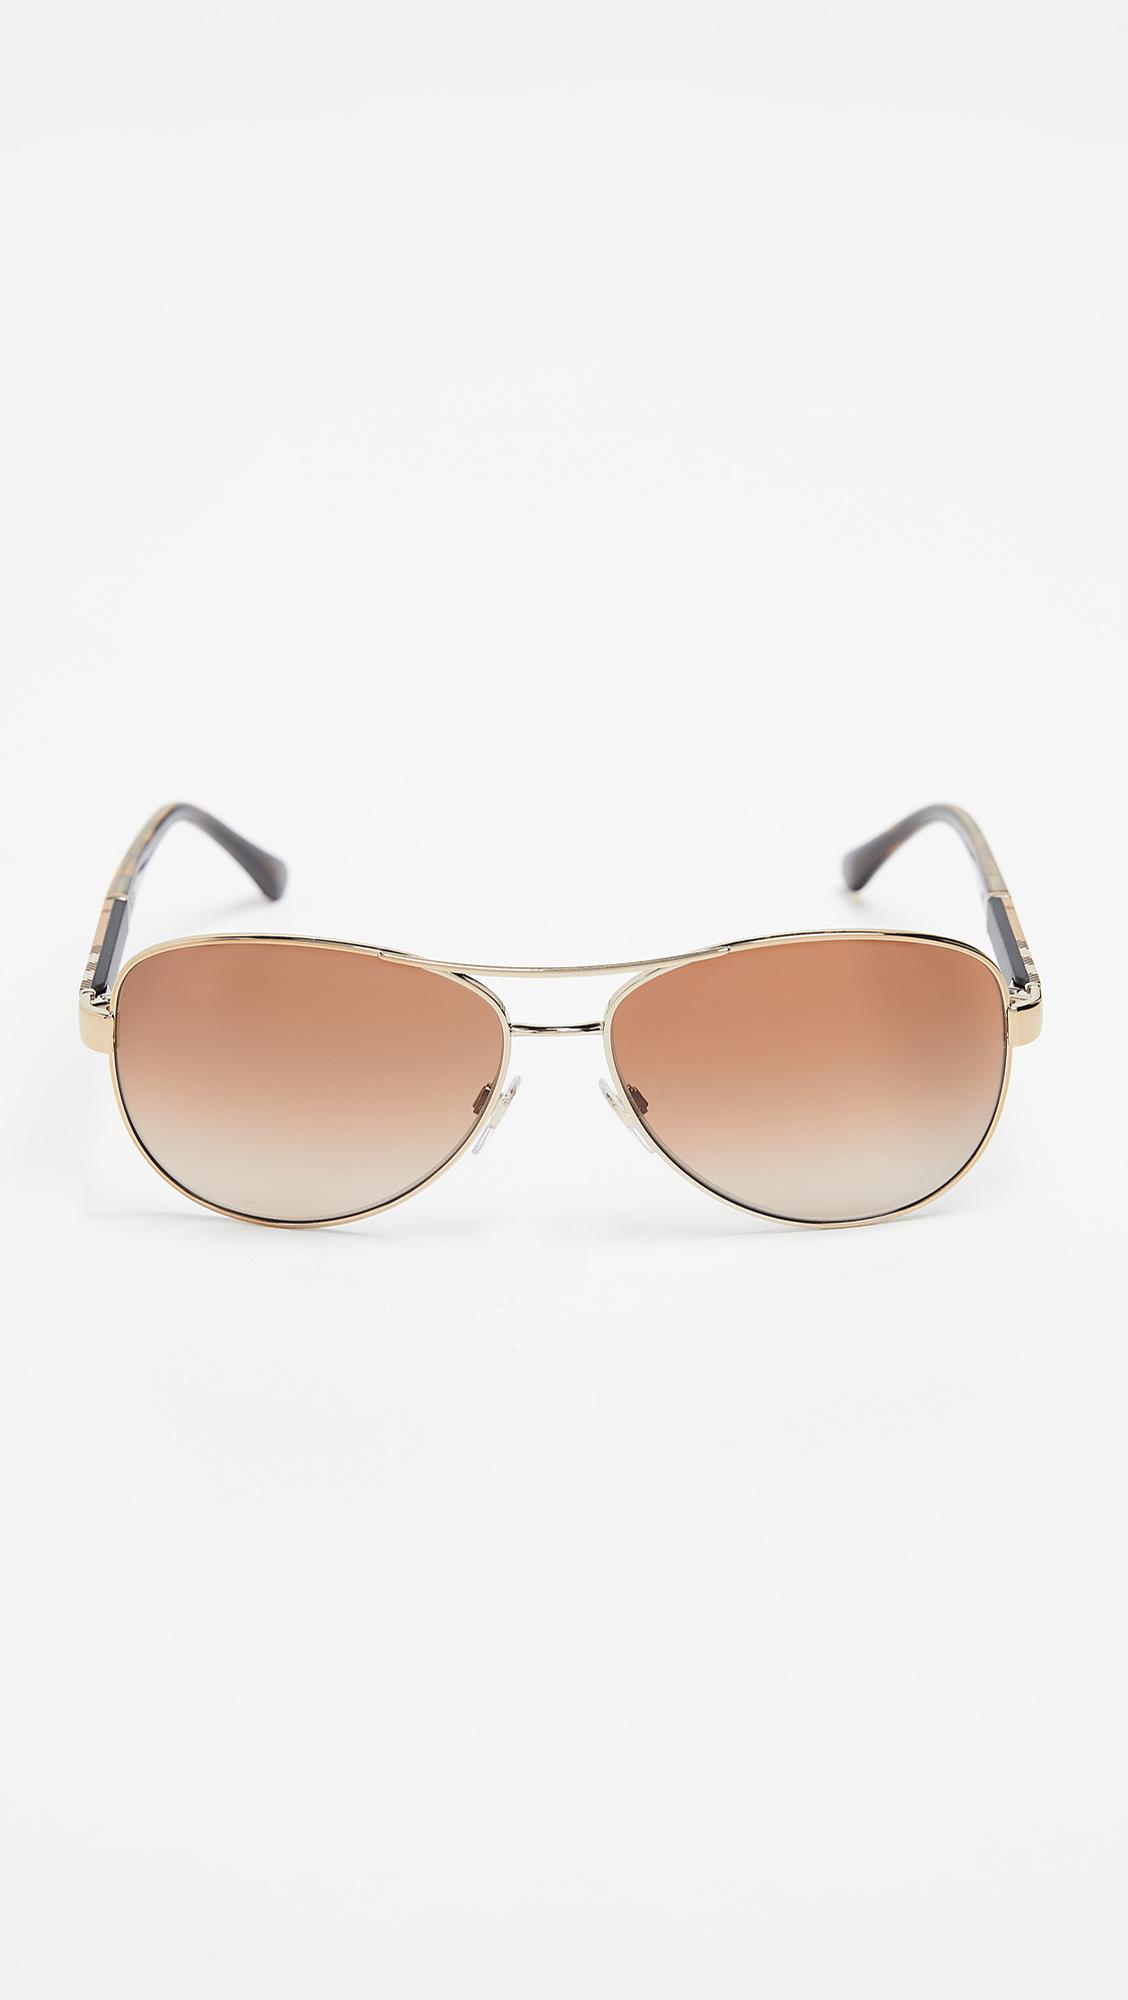 1554c798e5a2 Burberry 0be3080 Sunglasses in Brown for Men - Lyst